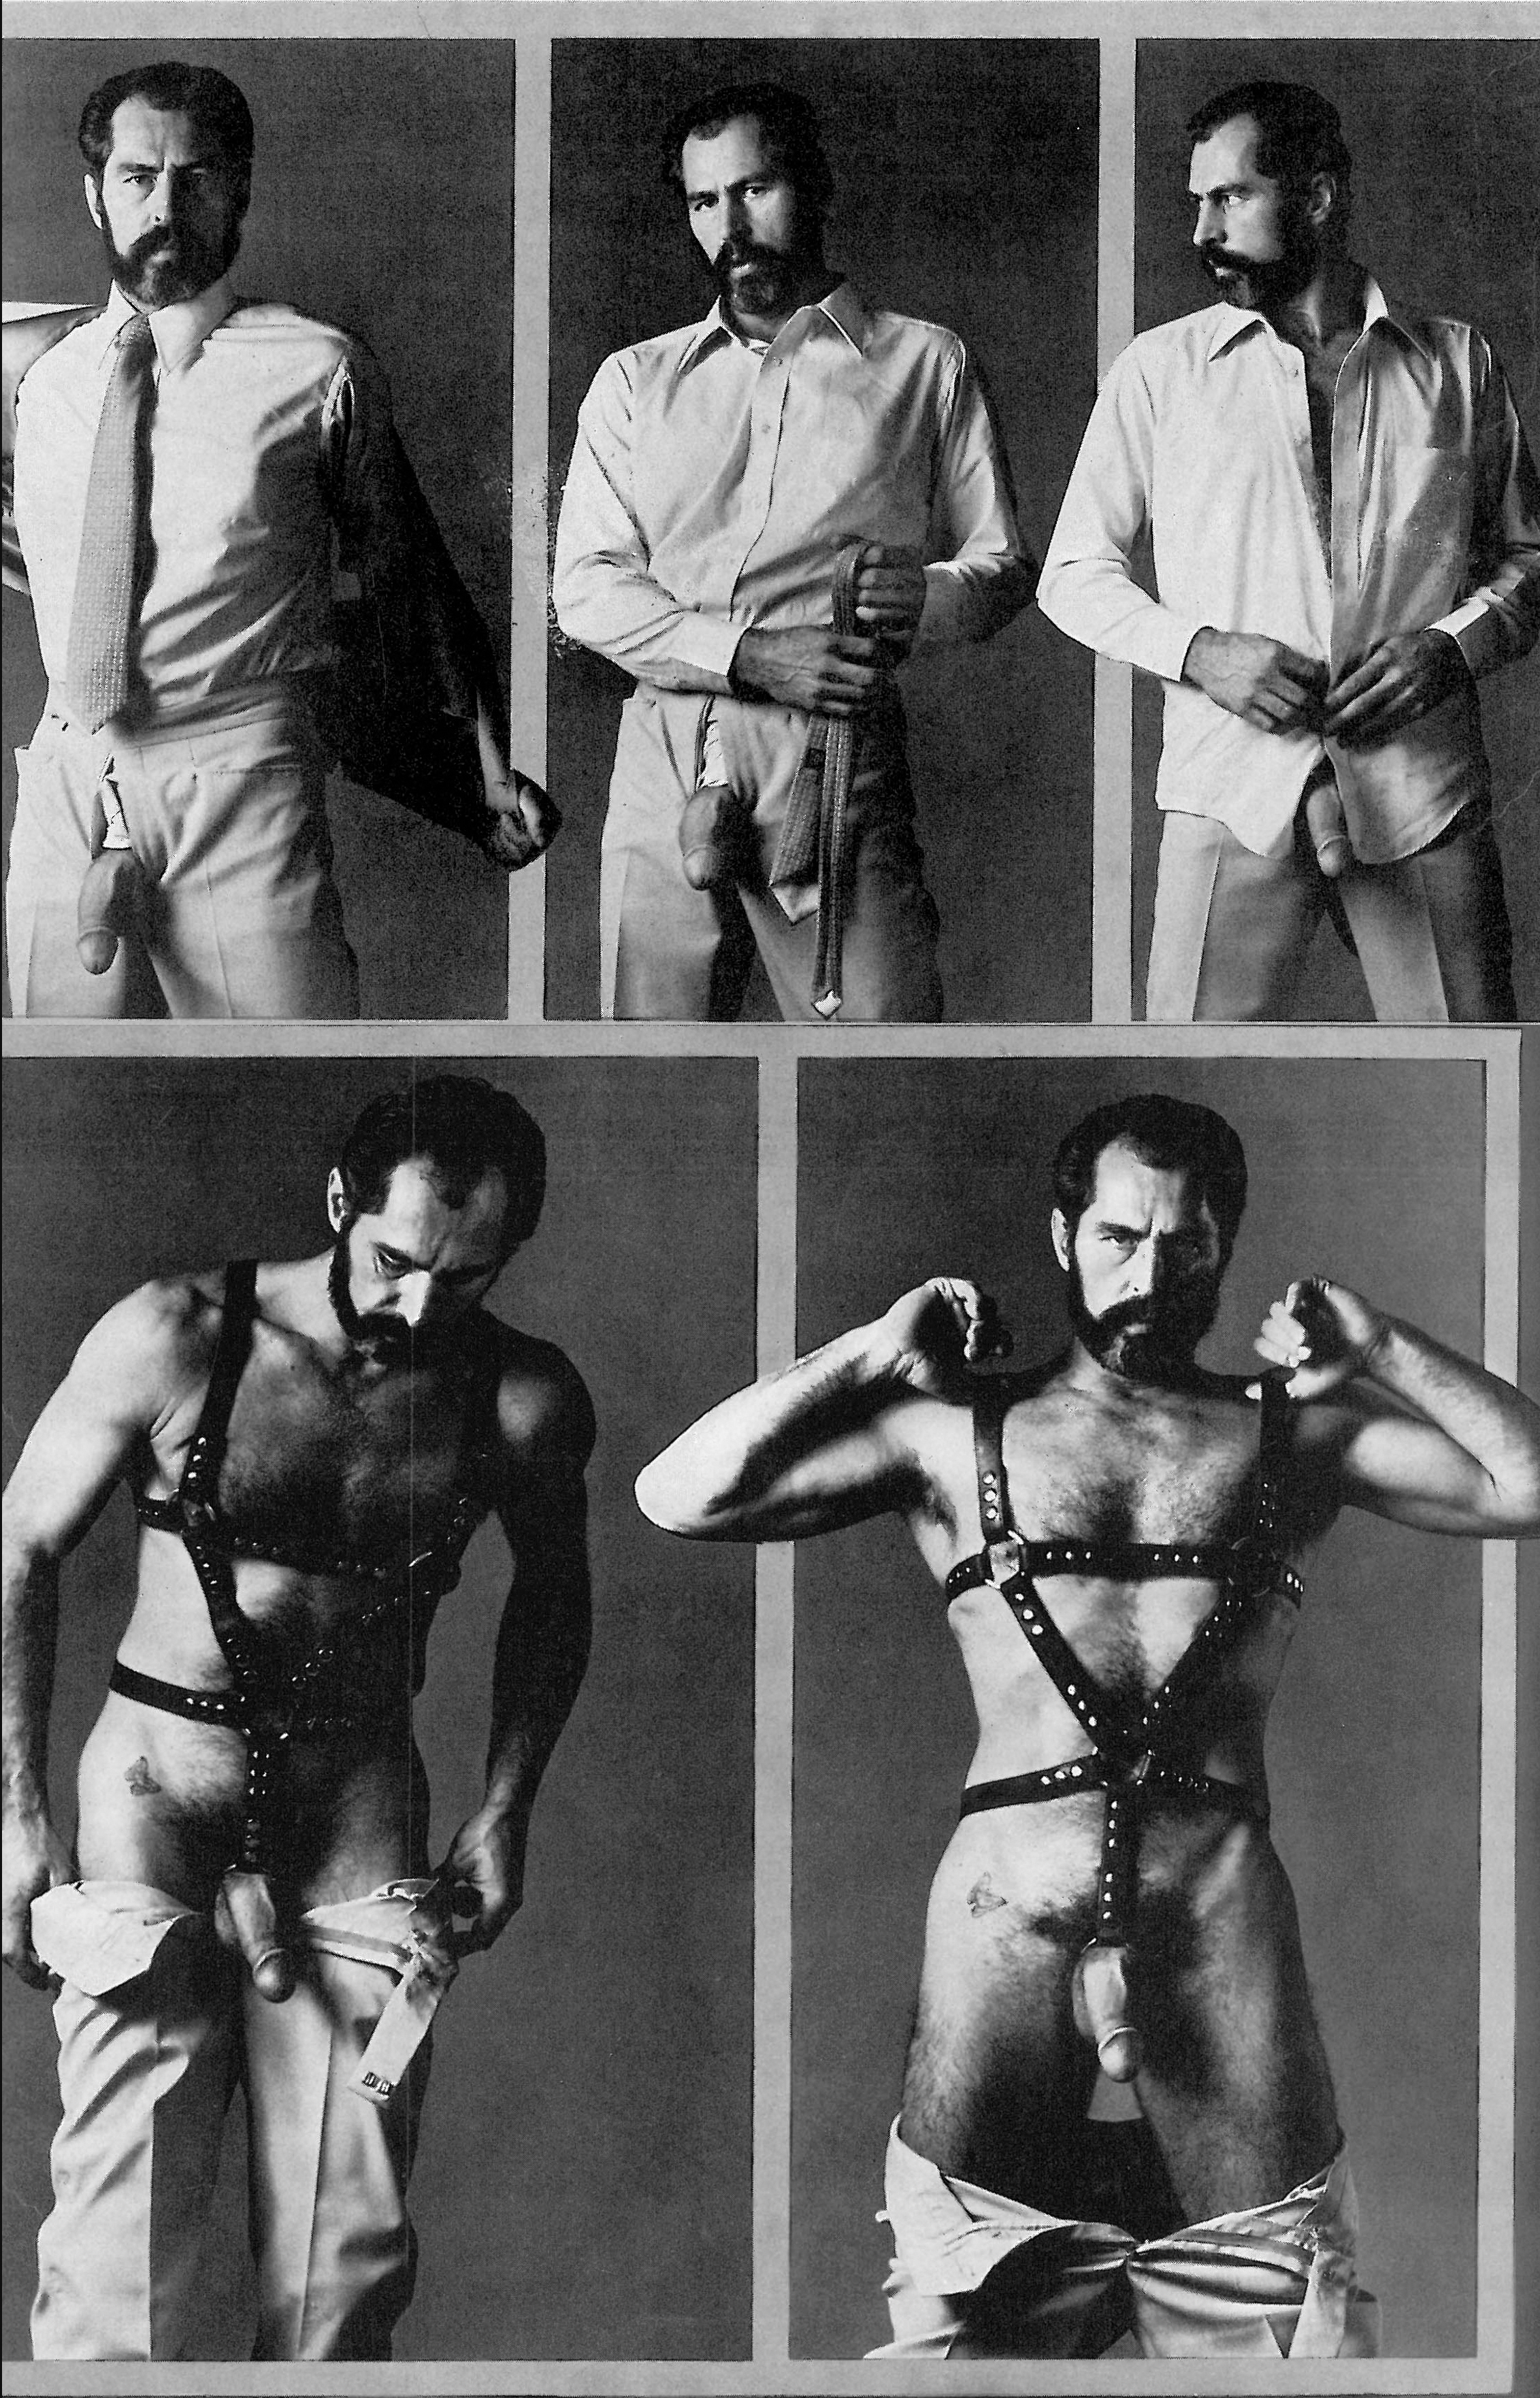 Photospread of Richard Locke stritease from suit and tie to leather harness